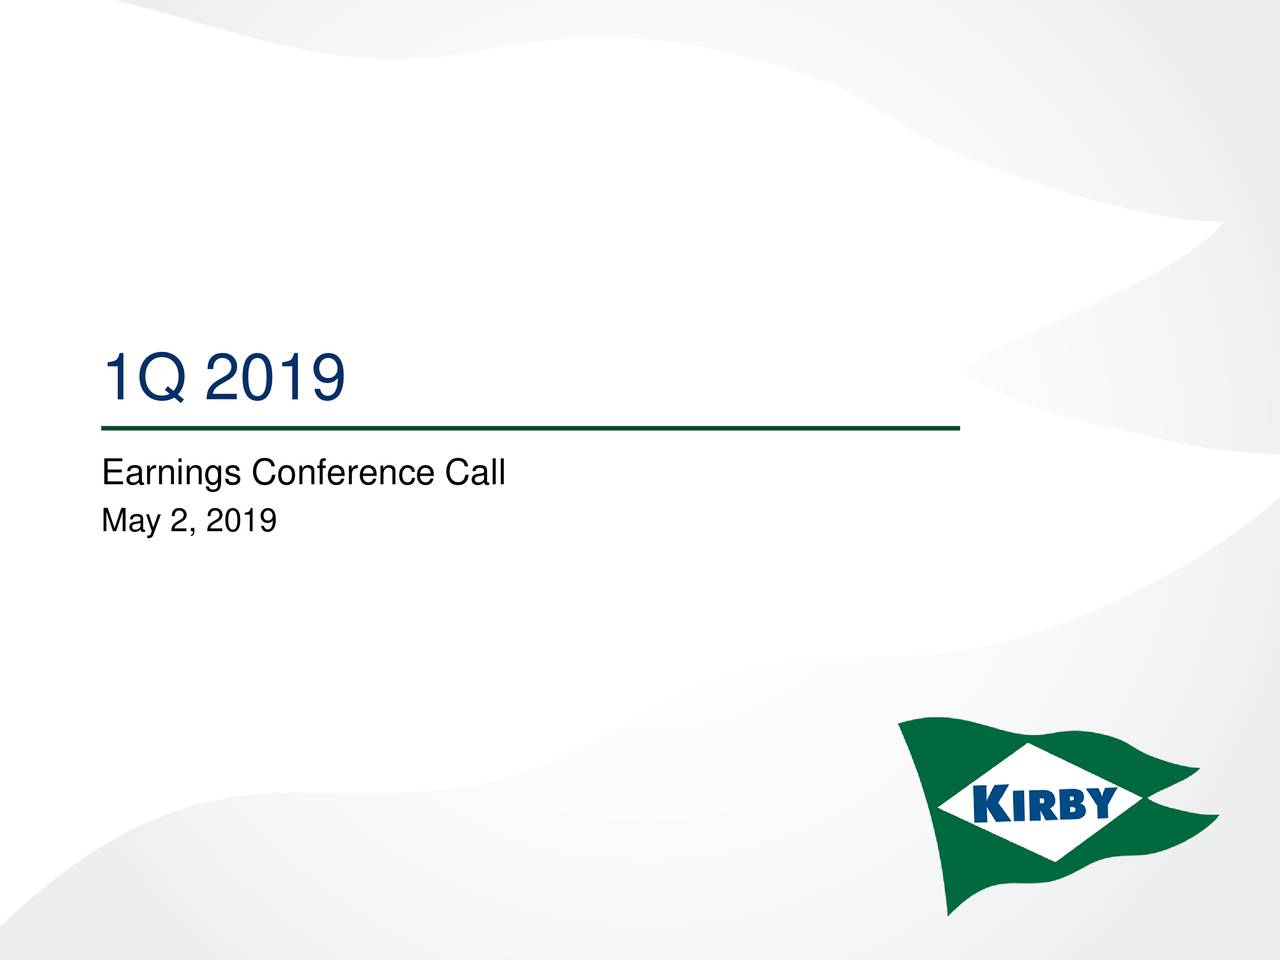 Earnings Conference Call May 2, 2019